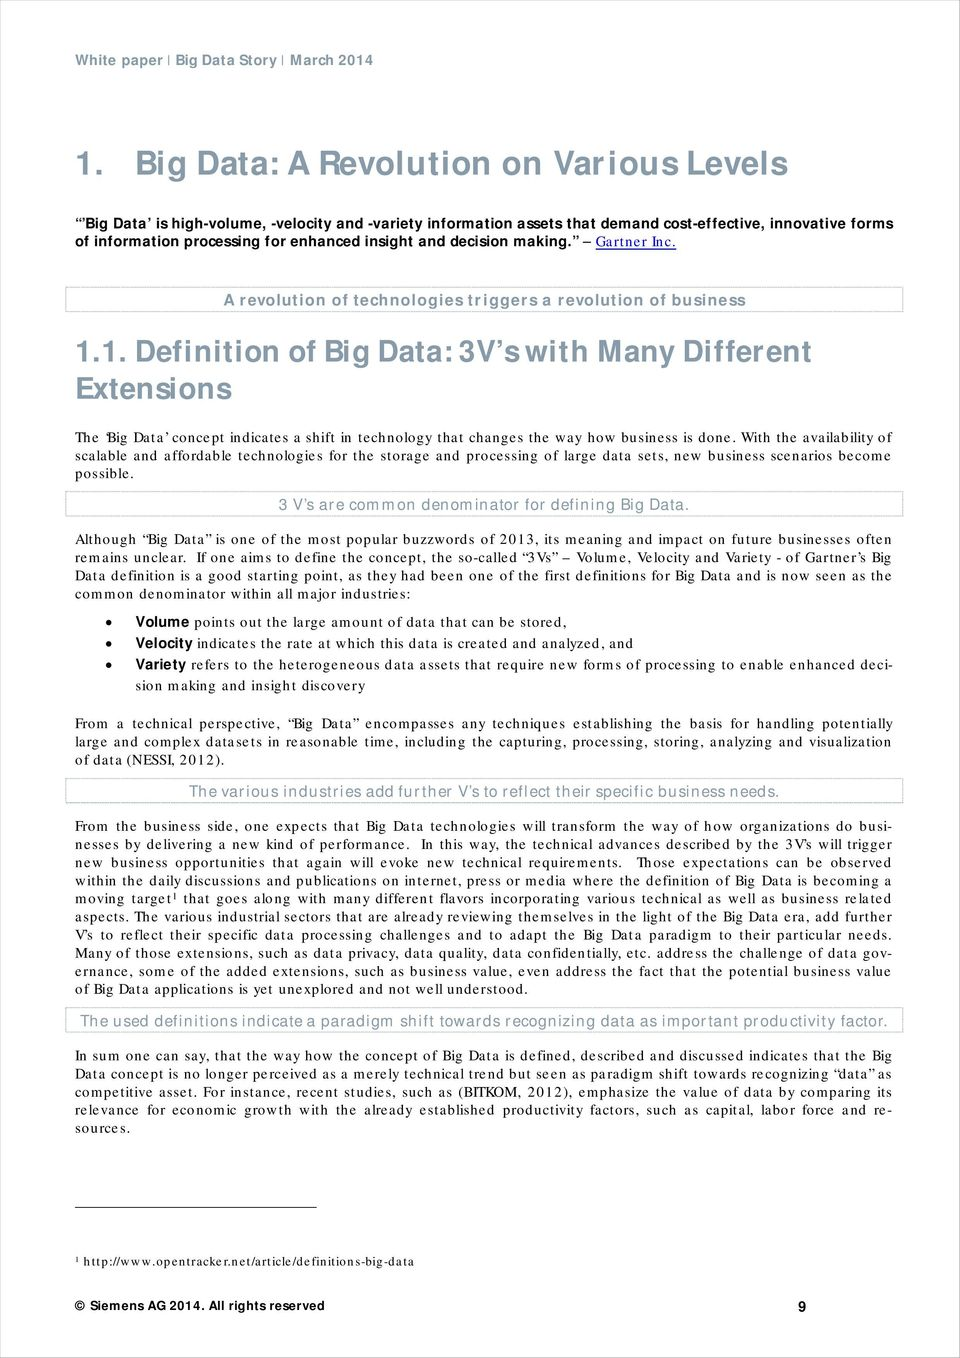 1. Definition of Big Data: 3V s with Many Different Extensions The Big Data concept indicates a shift in technology that changes the way how business is done.